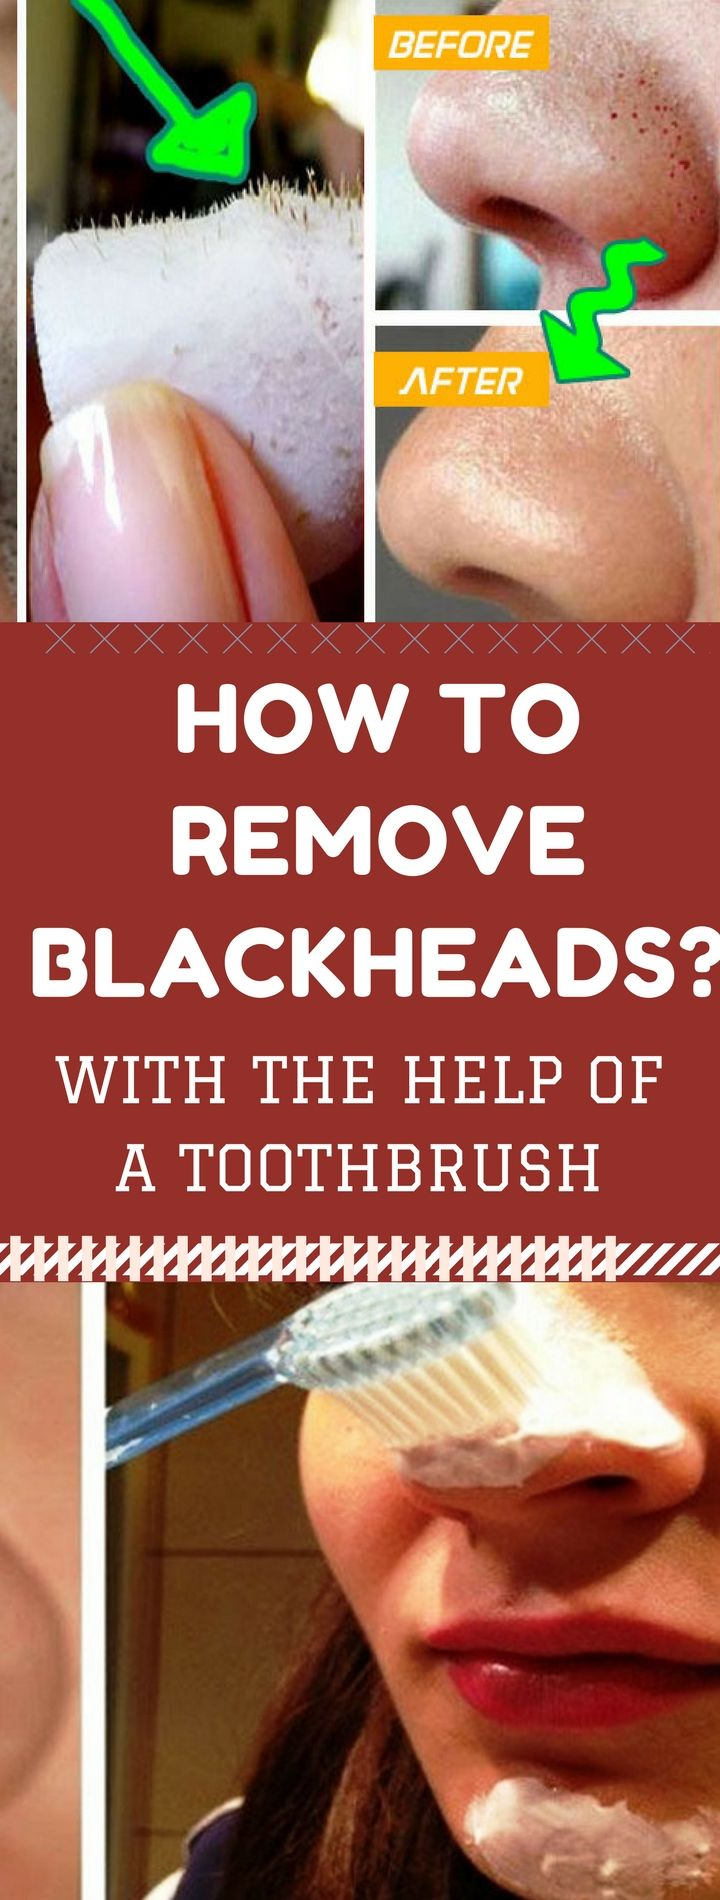 How to Remove Blackheads with the Help of a Toothbrushh ...